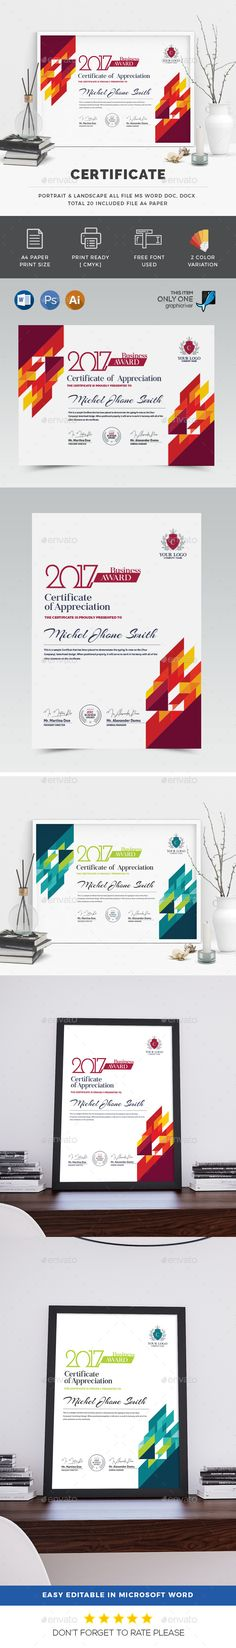 Certificate  Psd Templates Certificate And Template